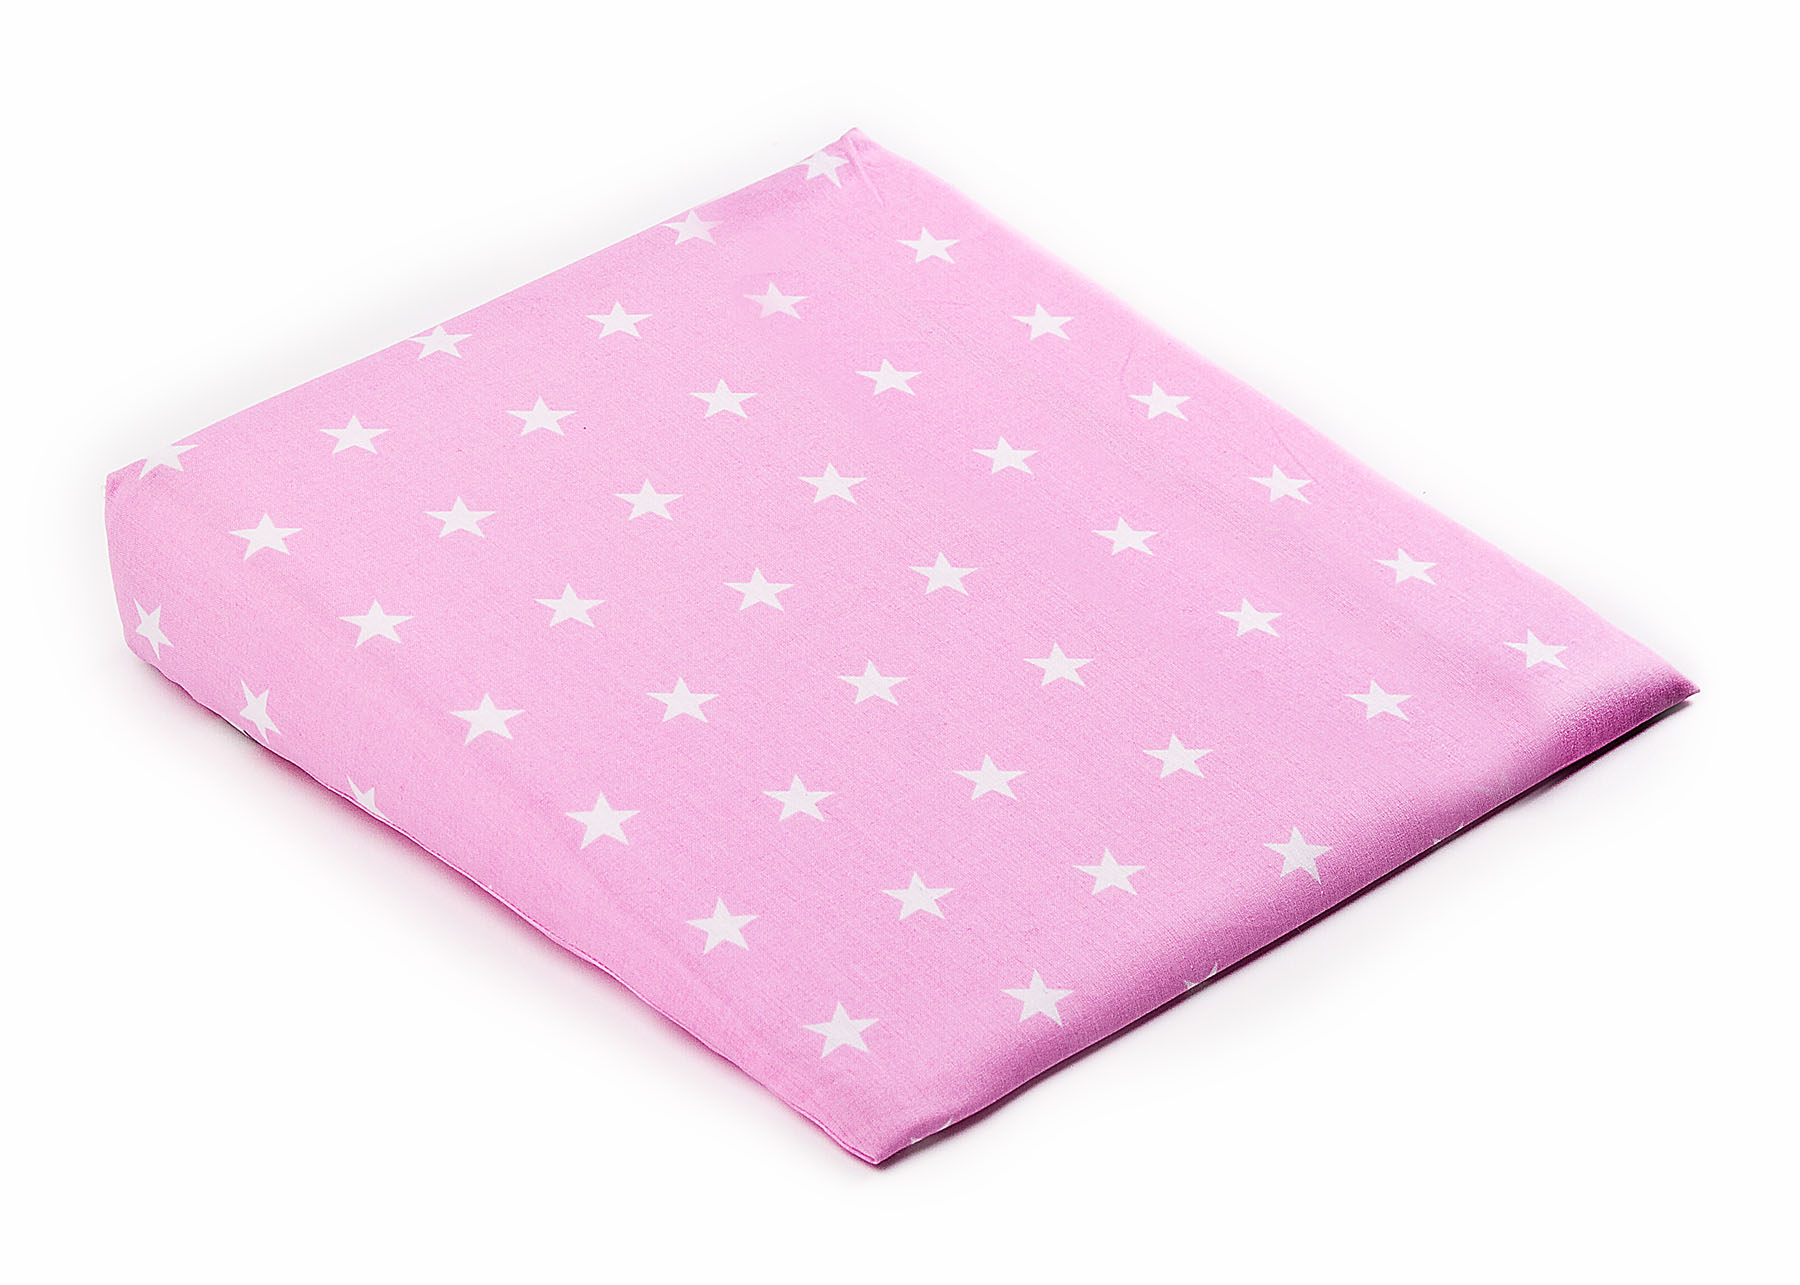 38×30 Wedge Pillowcases – stars pink